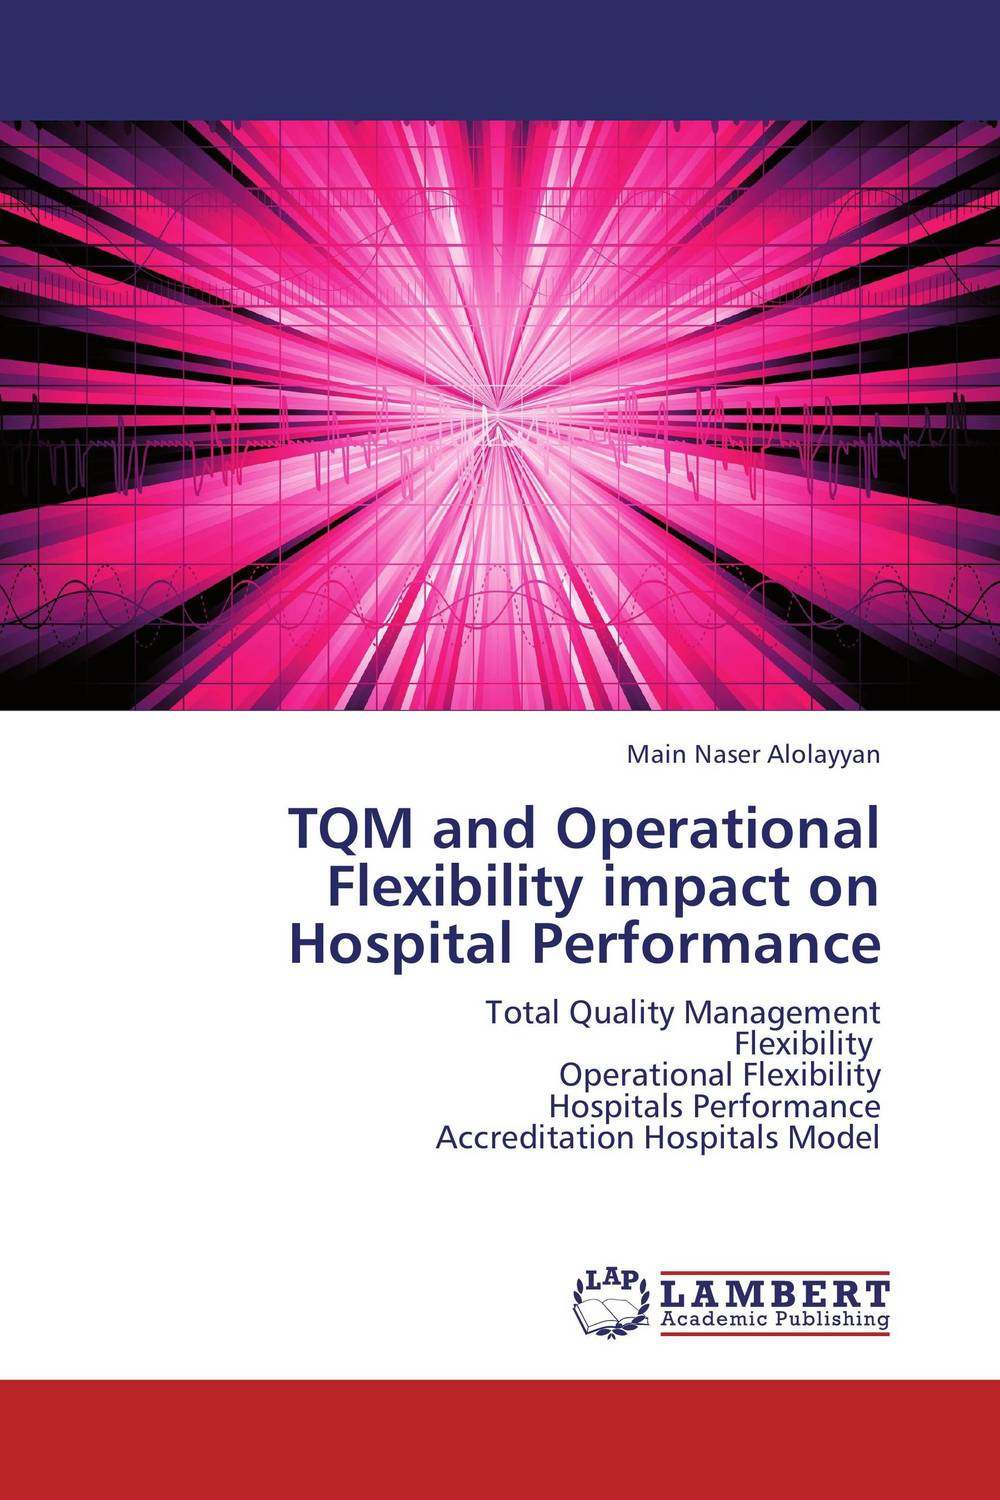 TQM and Operational Flexibility impact on Hospital Performance predictive validity of kcpe performance on kcse performance